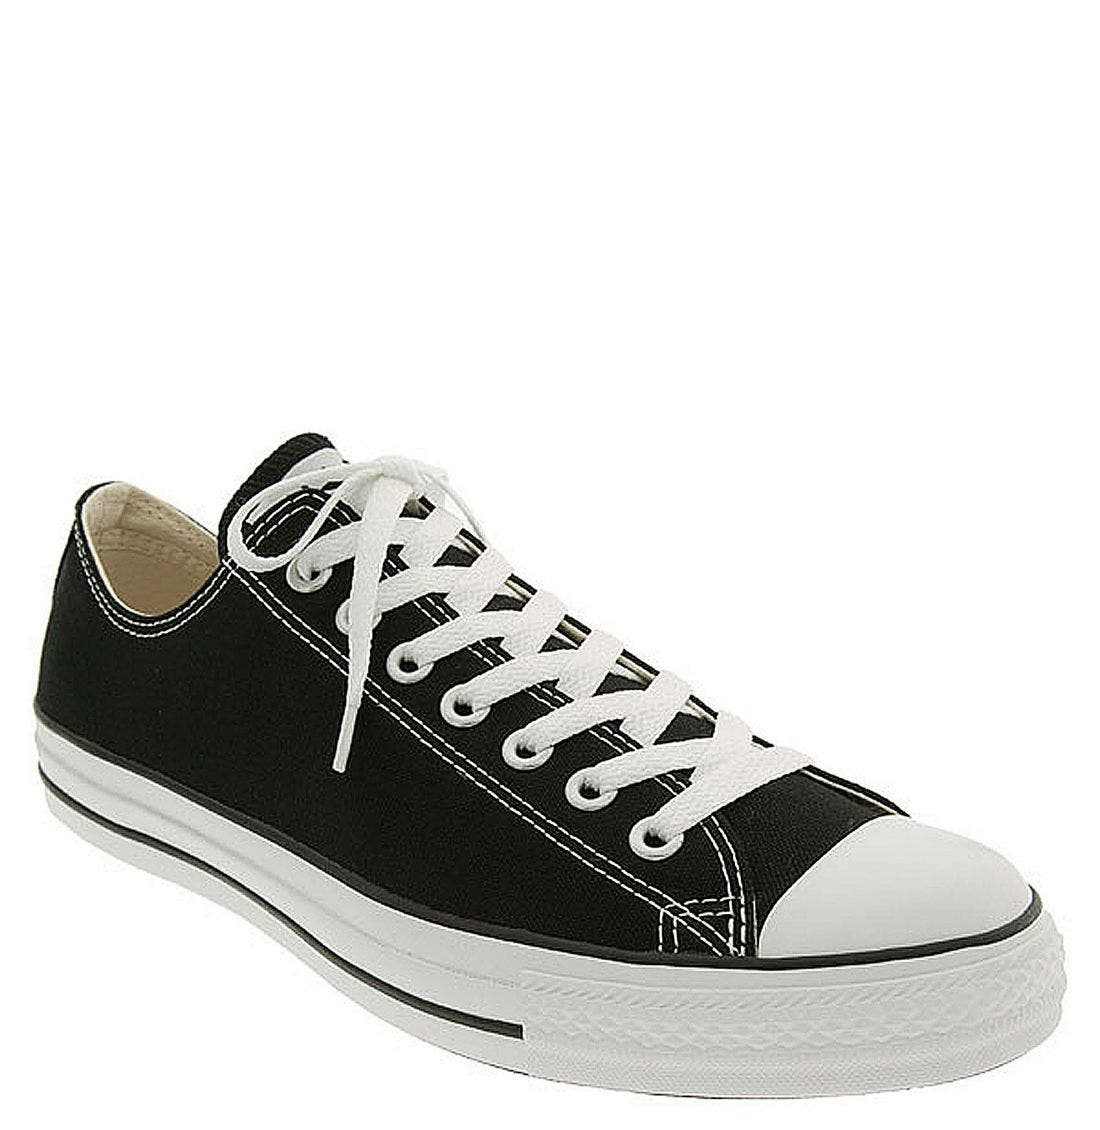 CONVERSE, Chuck Taylor<sup>®</sup> Low Top Sneaker, Main thumbnail 1, color, 100